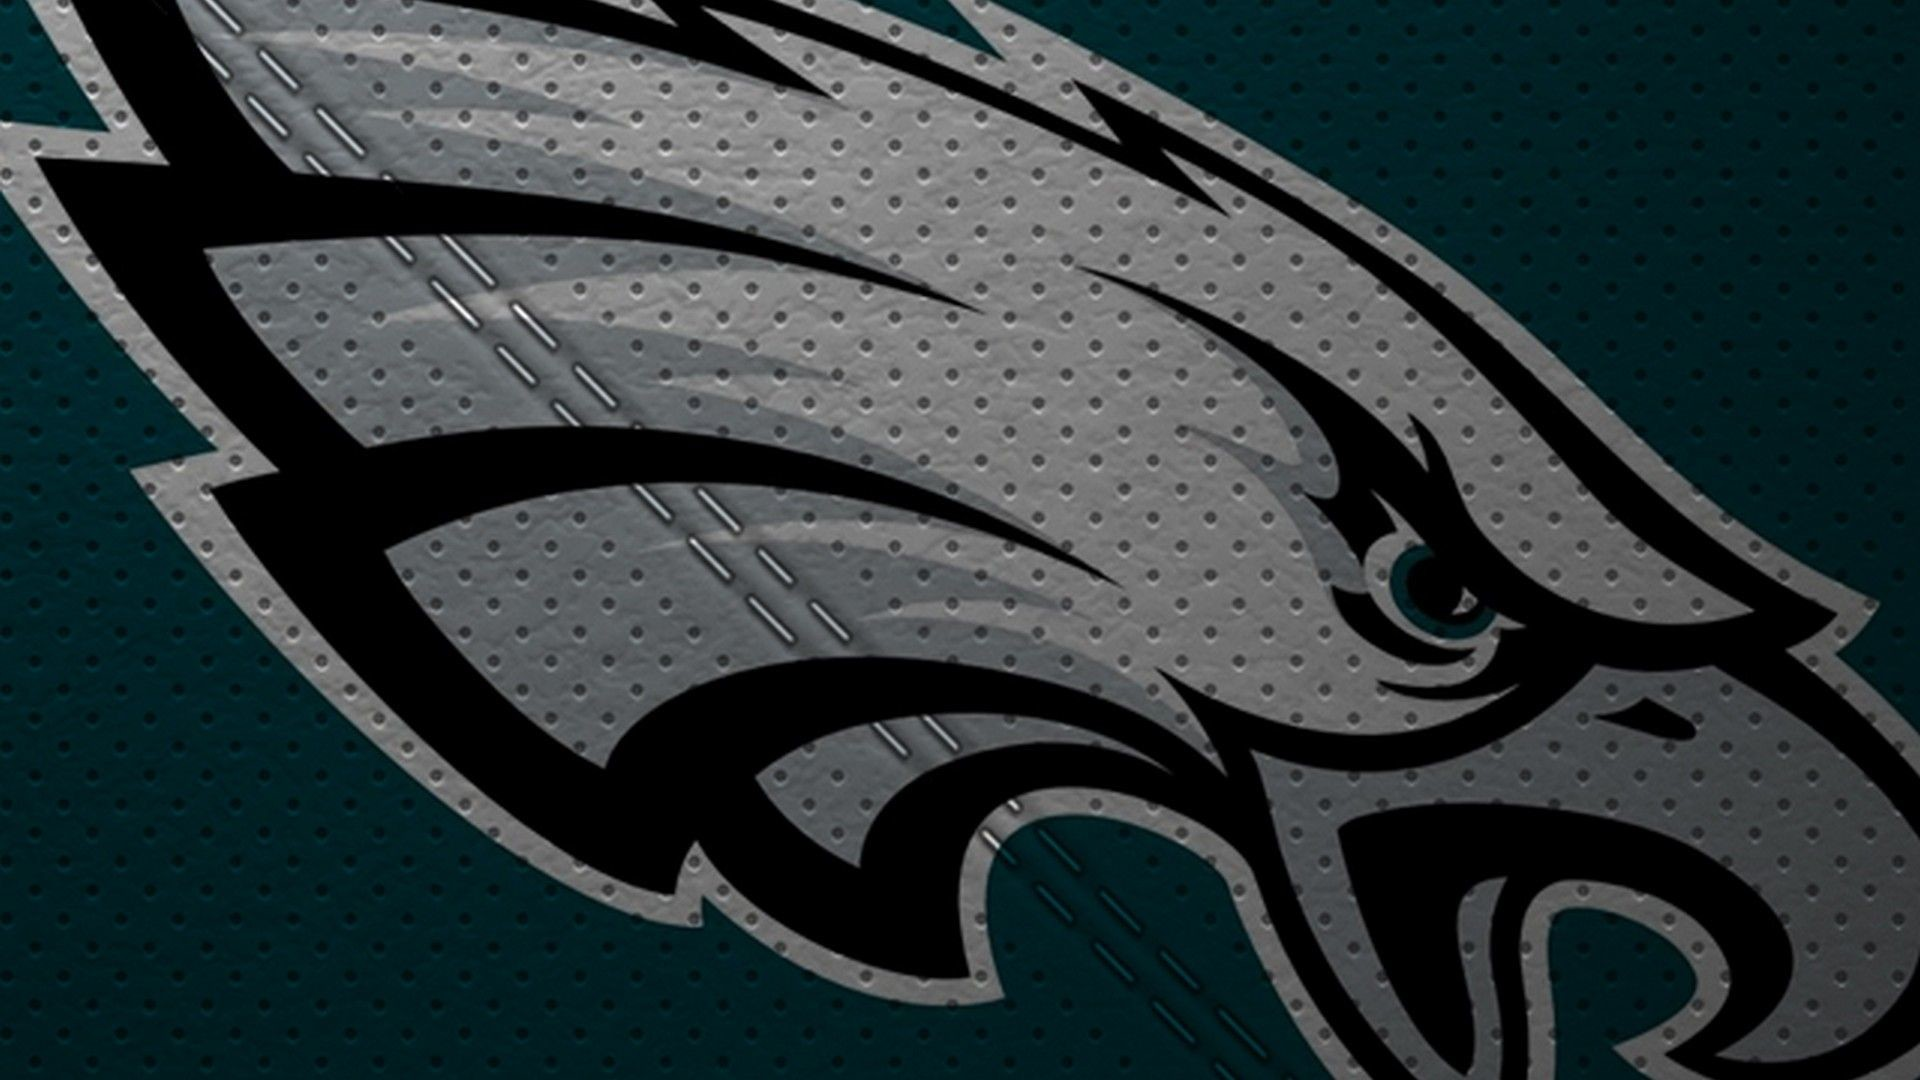 1920x1080 The Eagles Wallpaper HD | Best NFL Wallpapers